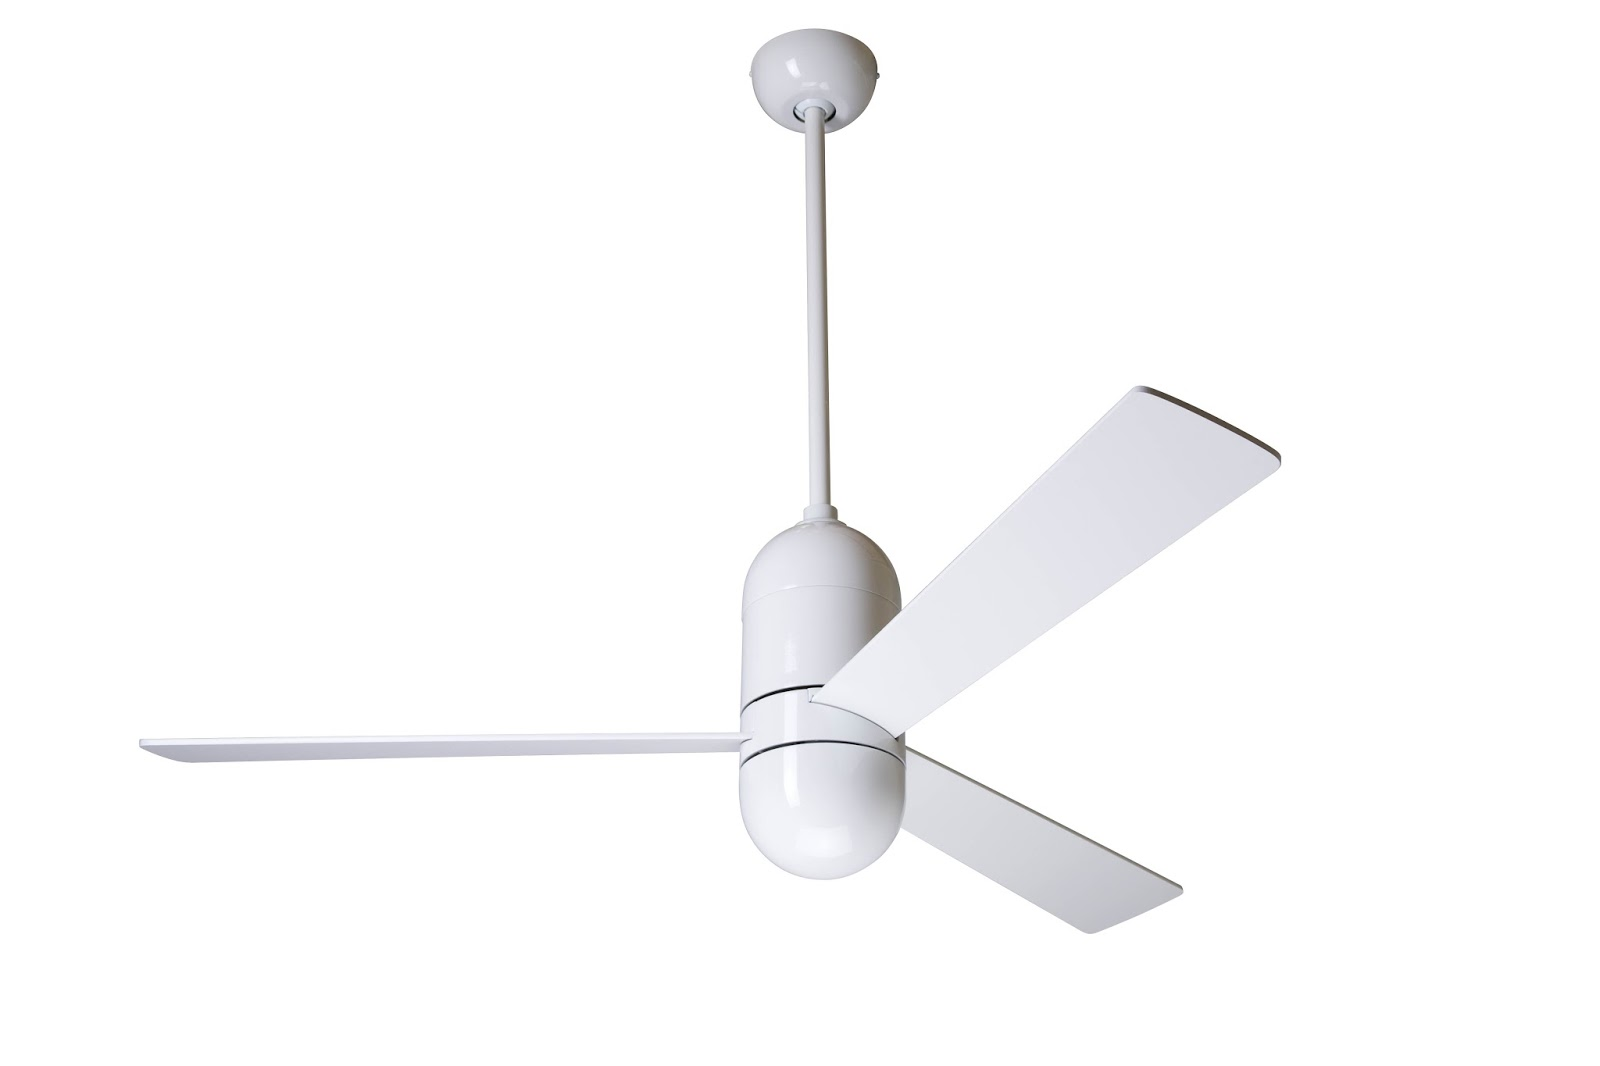 CIRRUS Ceiling Fan by MODERN FAN with light | moderndesigninterior.com for Cool White Ceiling Fans  28cpg